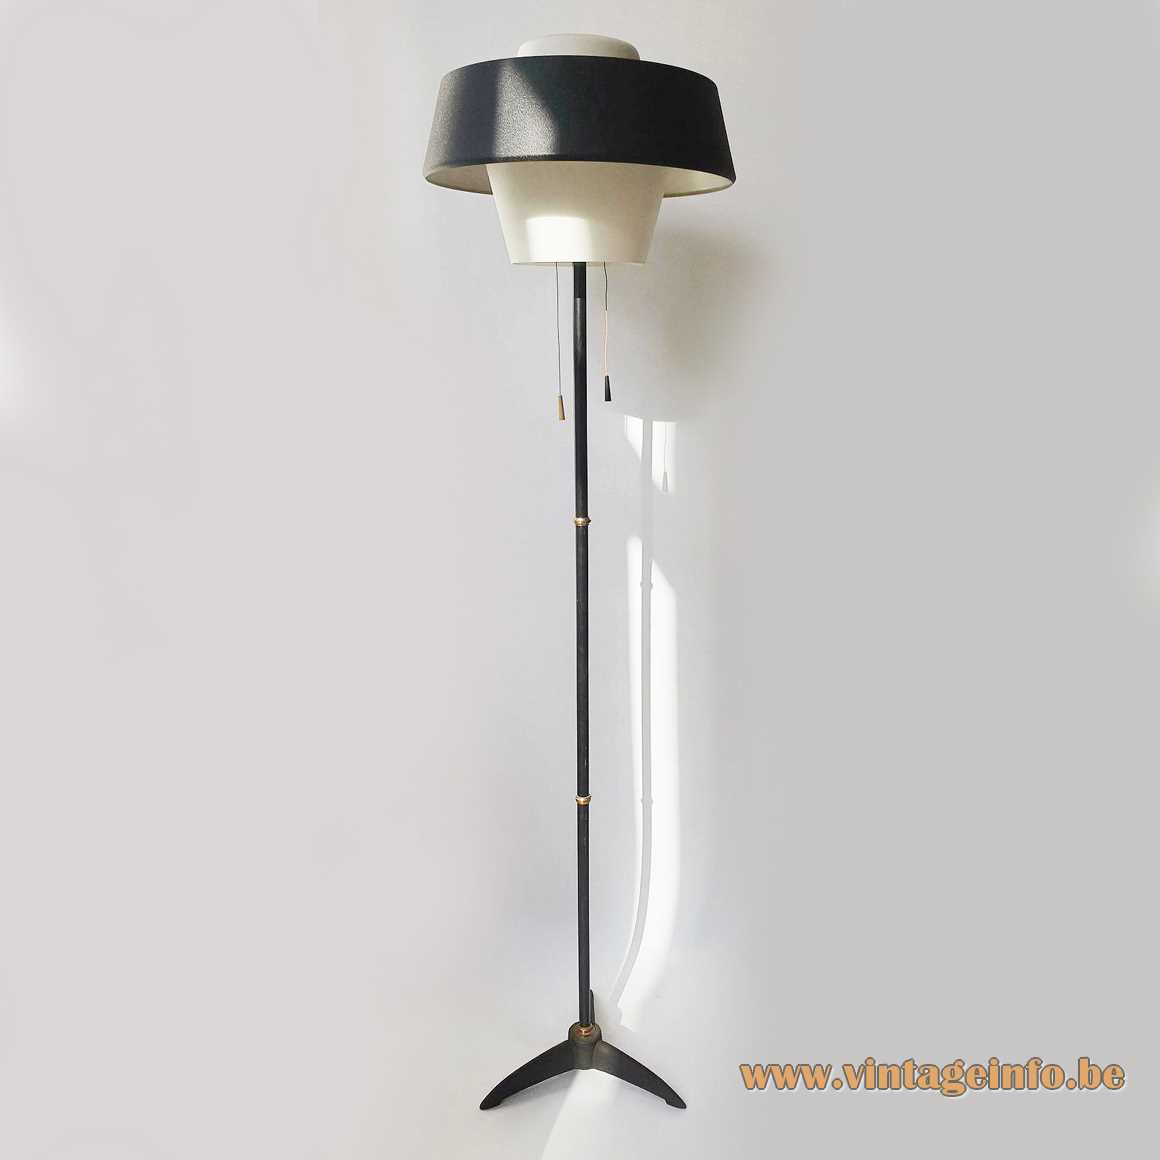 Louis Kalff NX 109 floor lamp Philips 1950s tripod opal glass diffuser black metal wrinkle paint lampshade